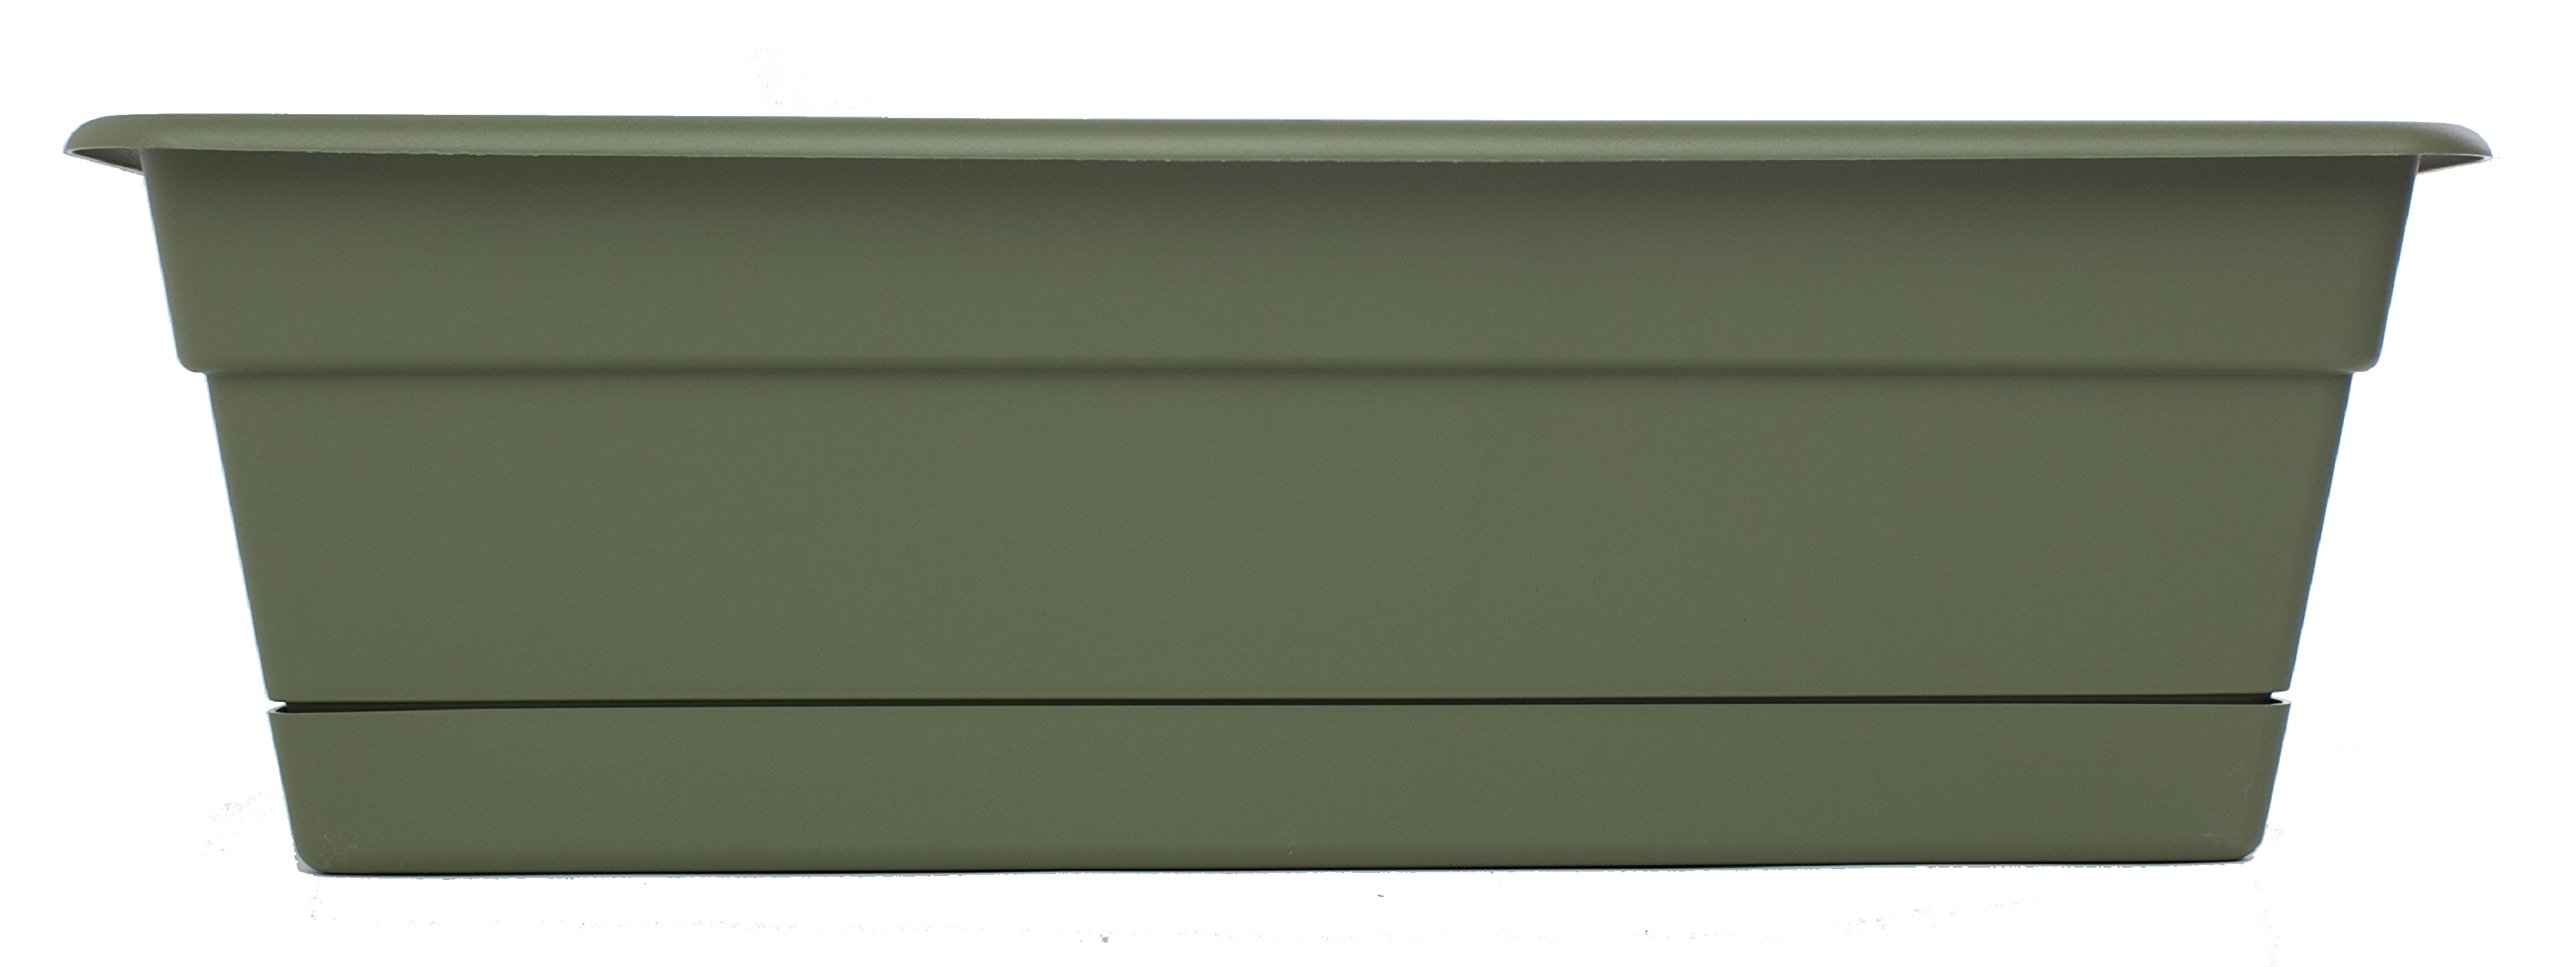 Bloem DCBT36-42 Dura Cotta Plant Window Box, 36-Inch, Living Green